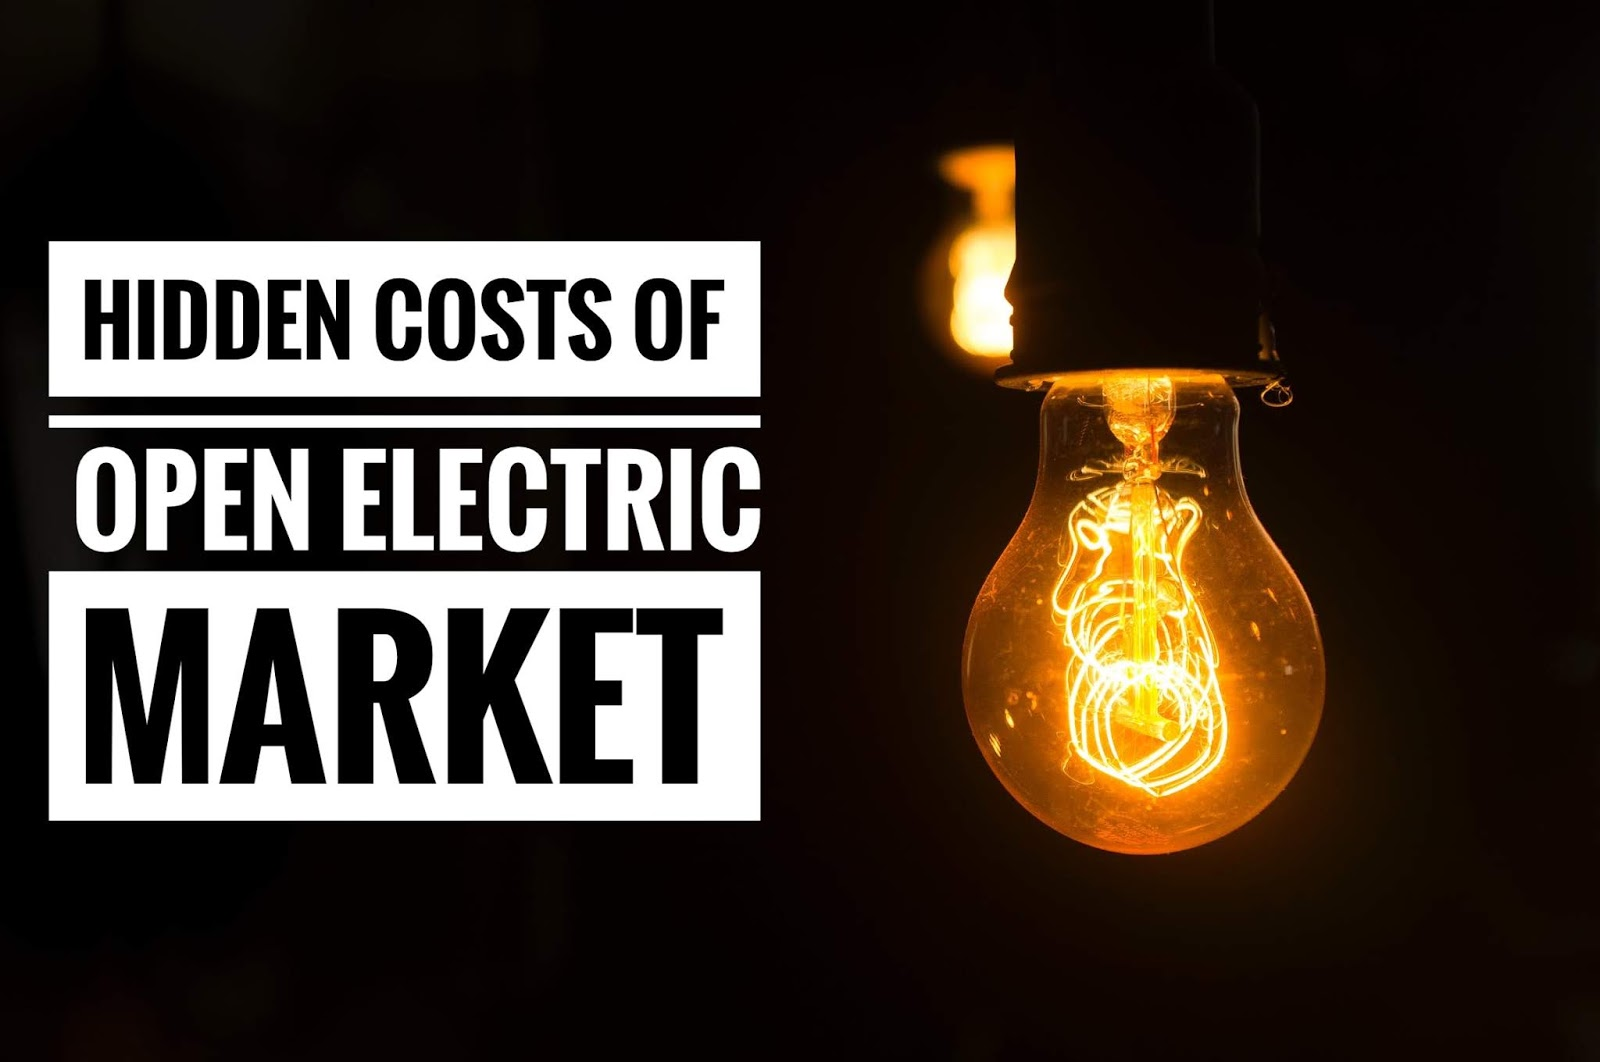 Switching to a new Open Electricity Market Supplier - 12